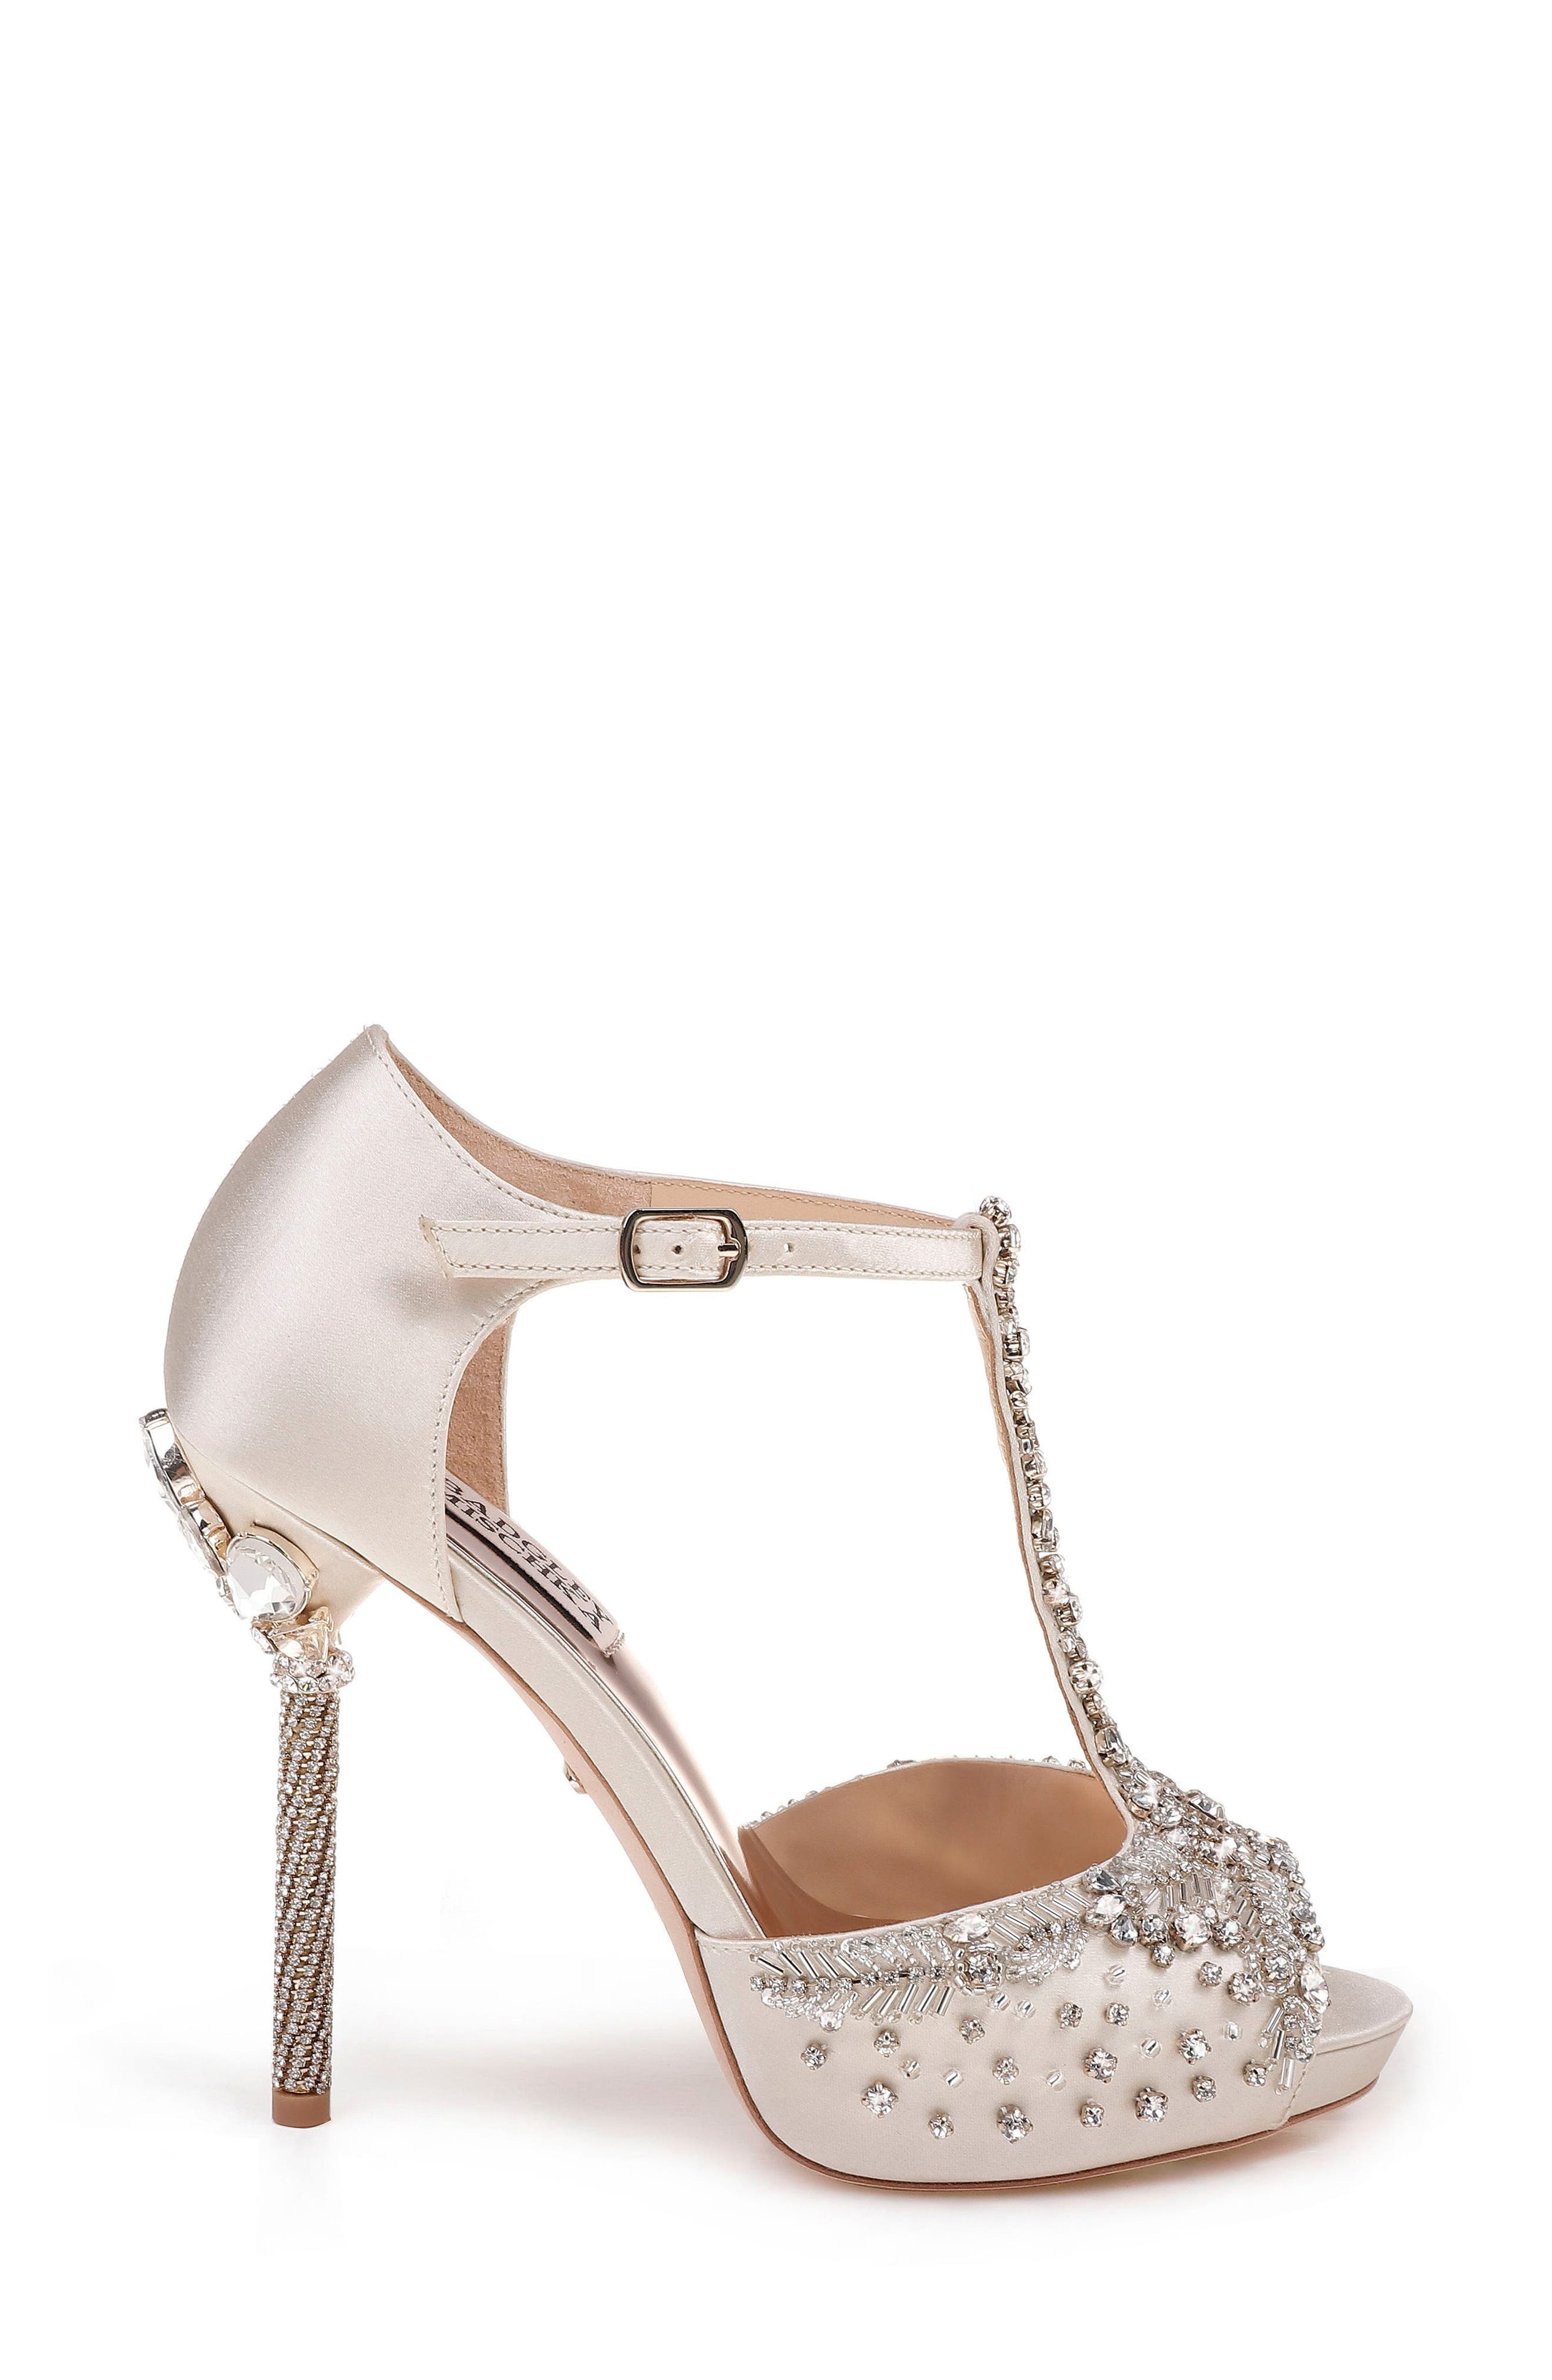 Stacey Crystal Embellished T-Strap Sandal,                             Alternate thumbnail 3, color,                             Ivory Satin